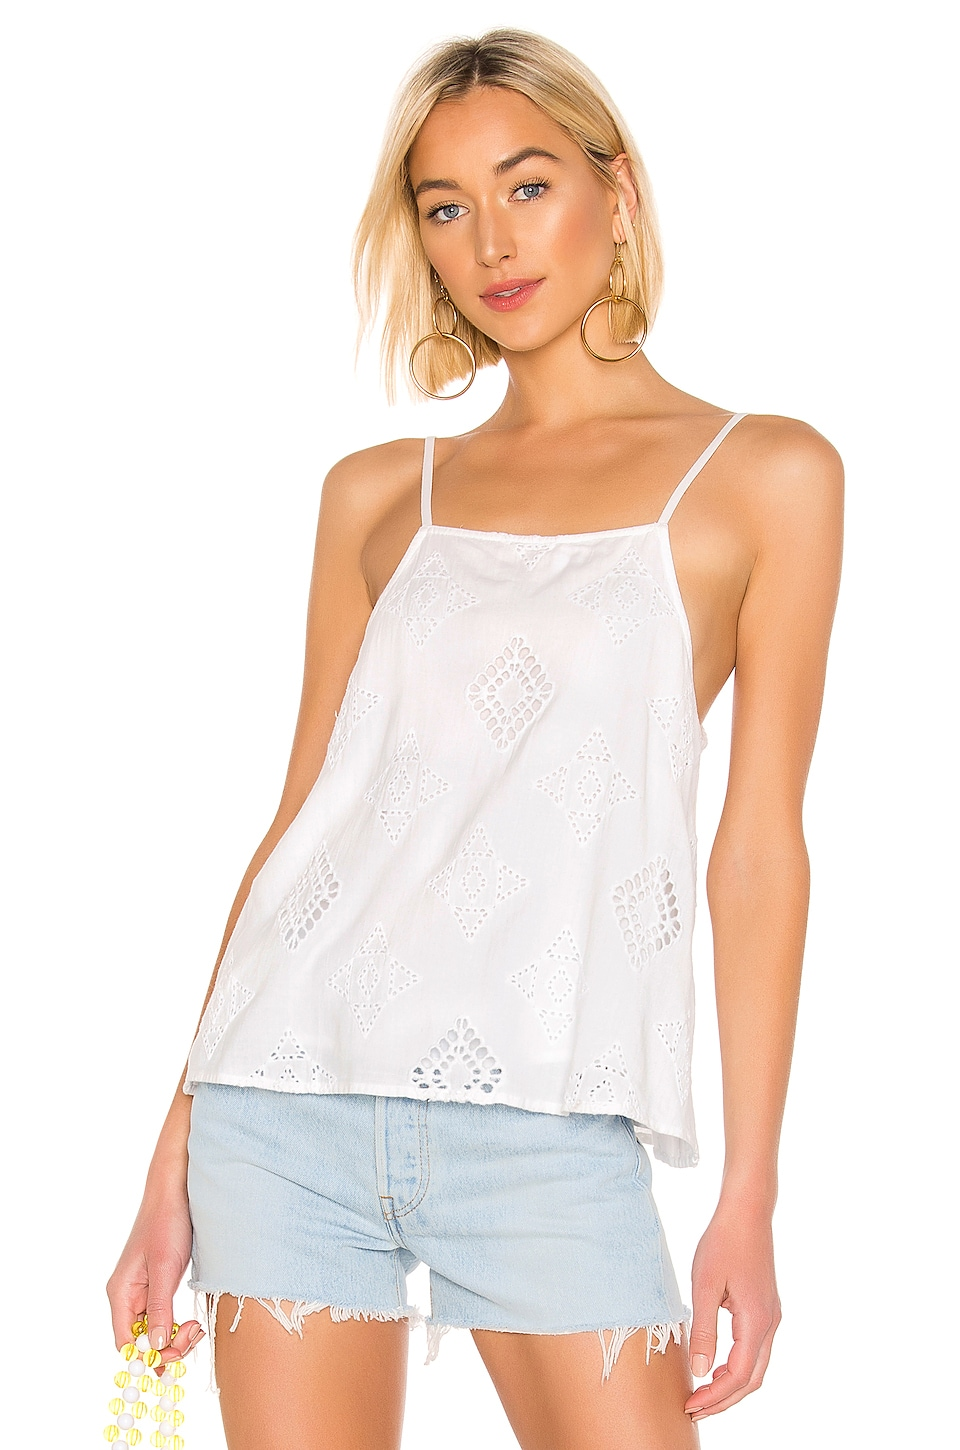 House of Harlow 1960 x REVOLVE Renee Top in Ivory